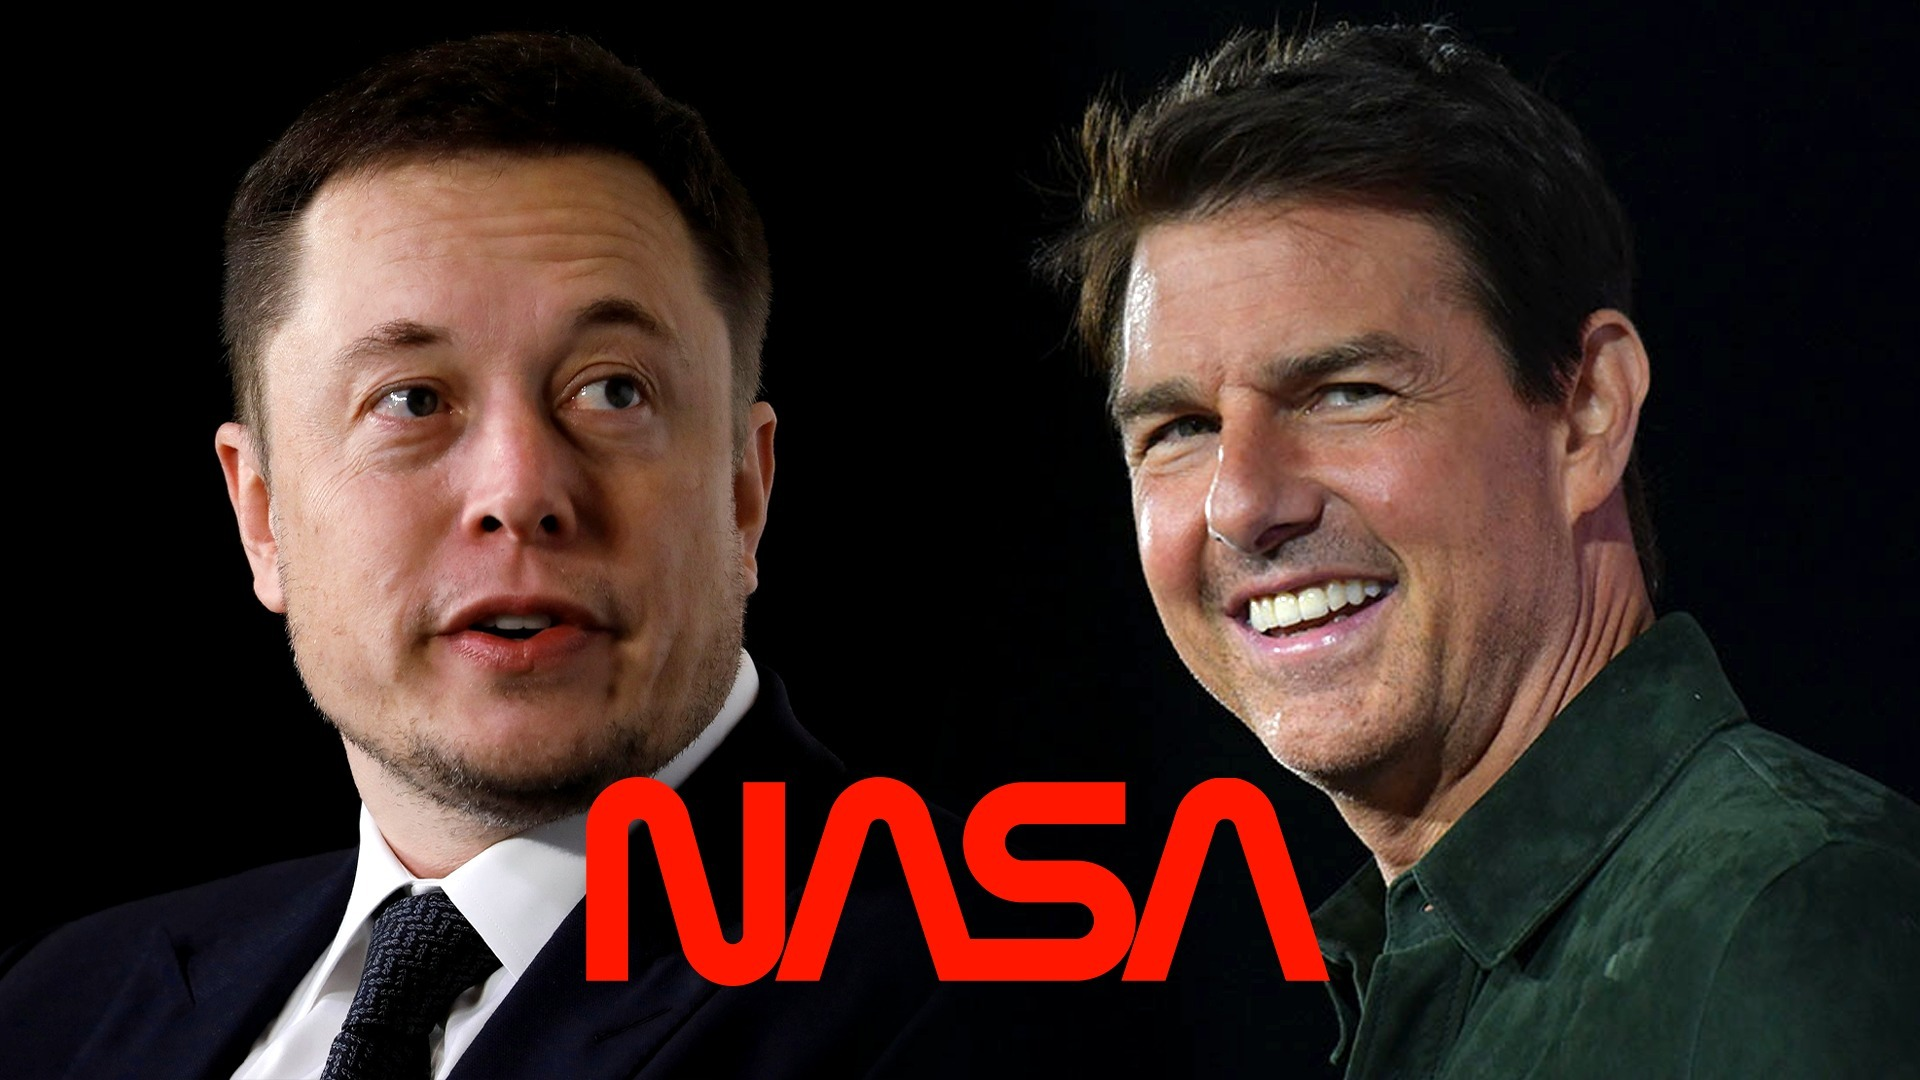 elon musk nasa tom cruise film